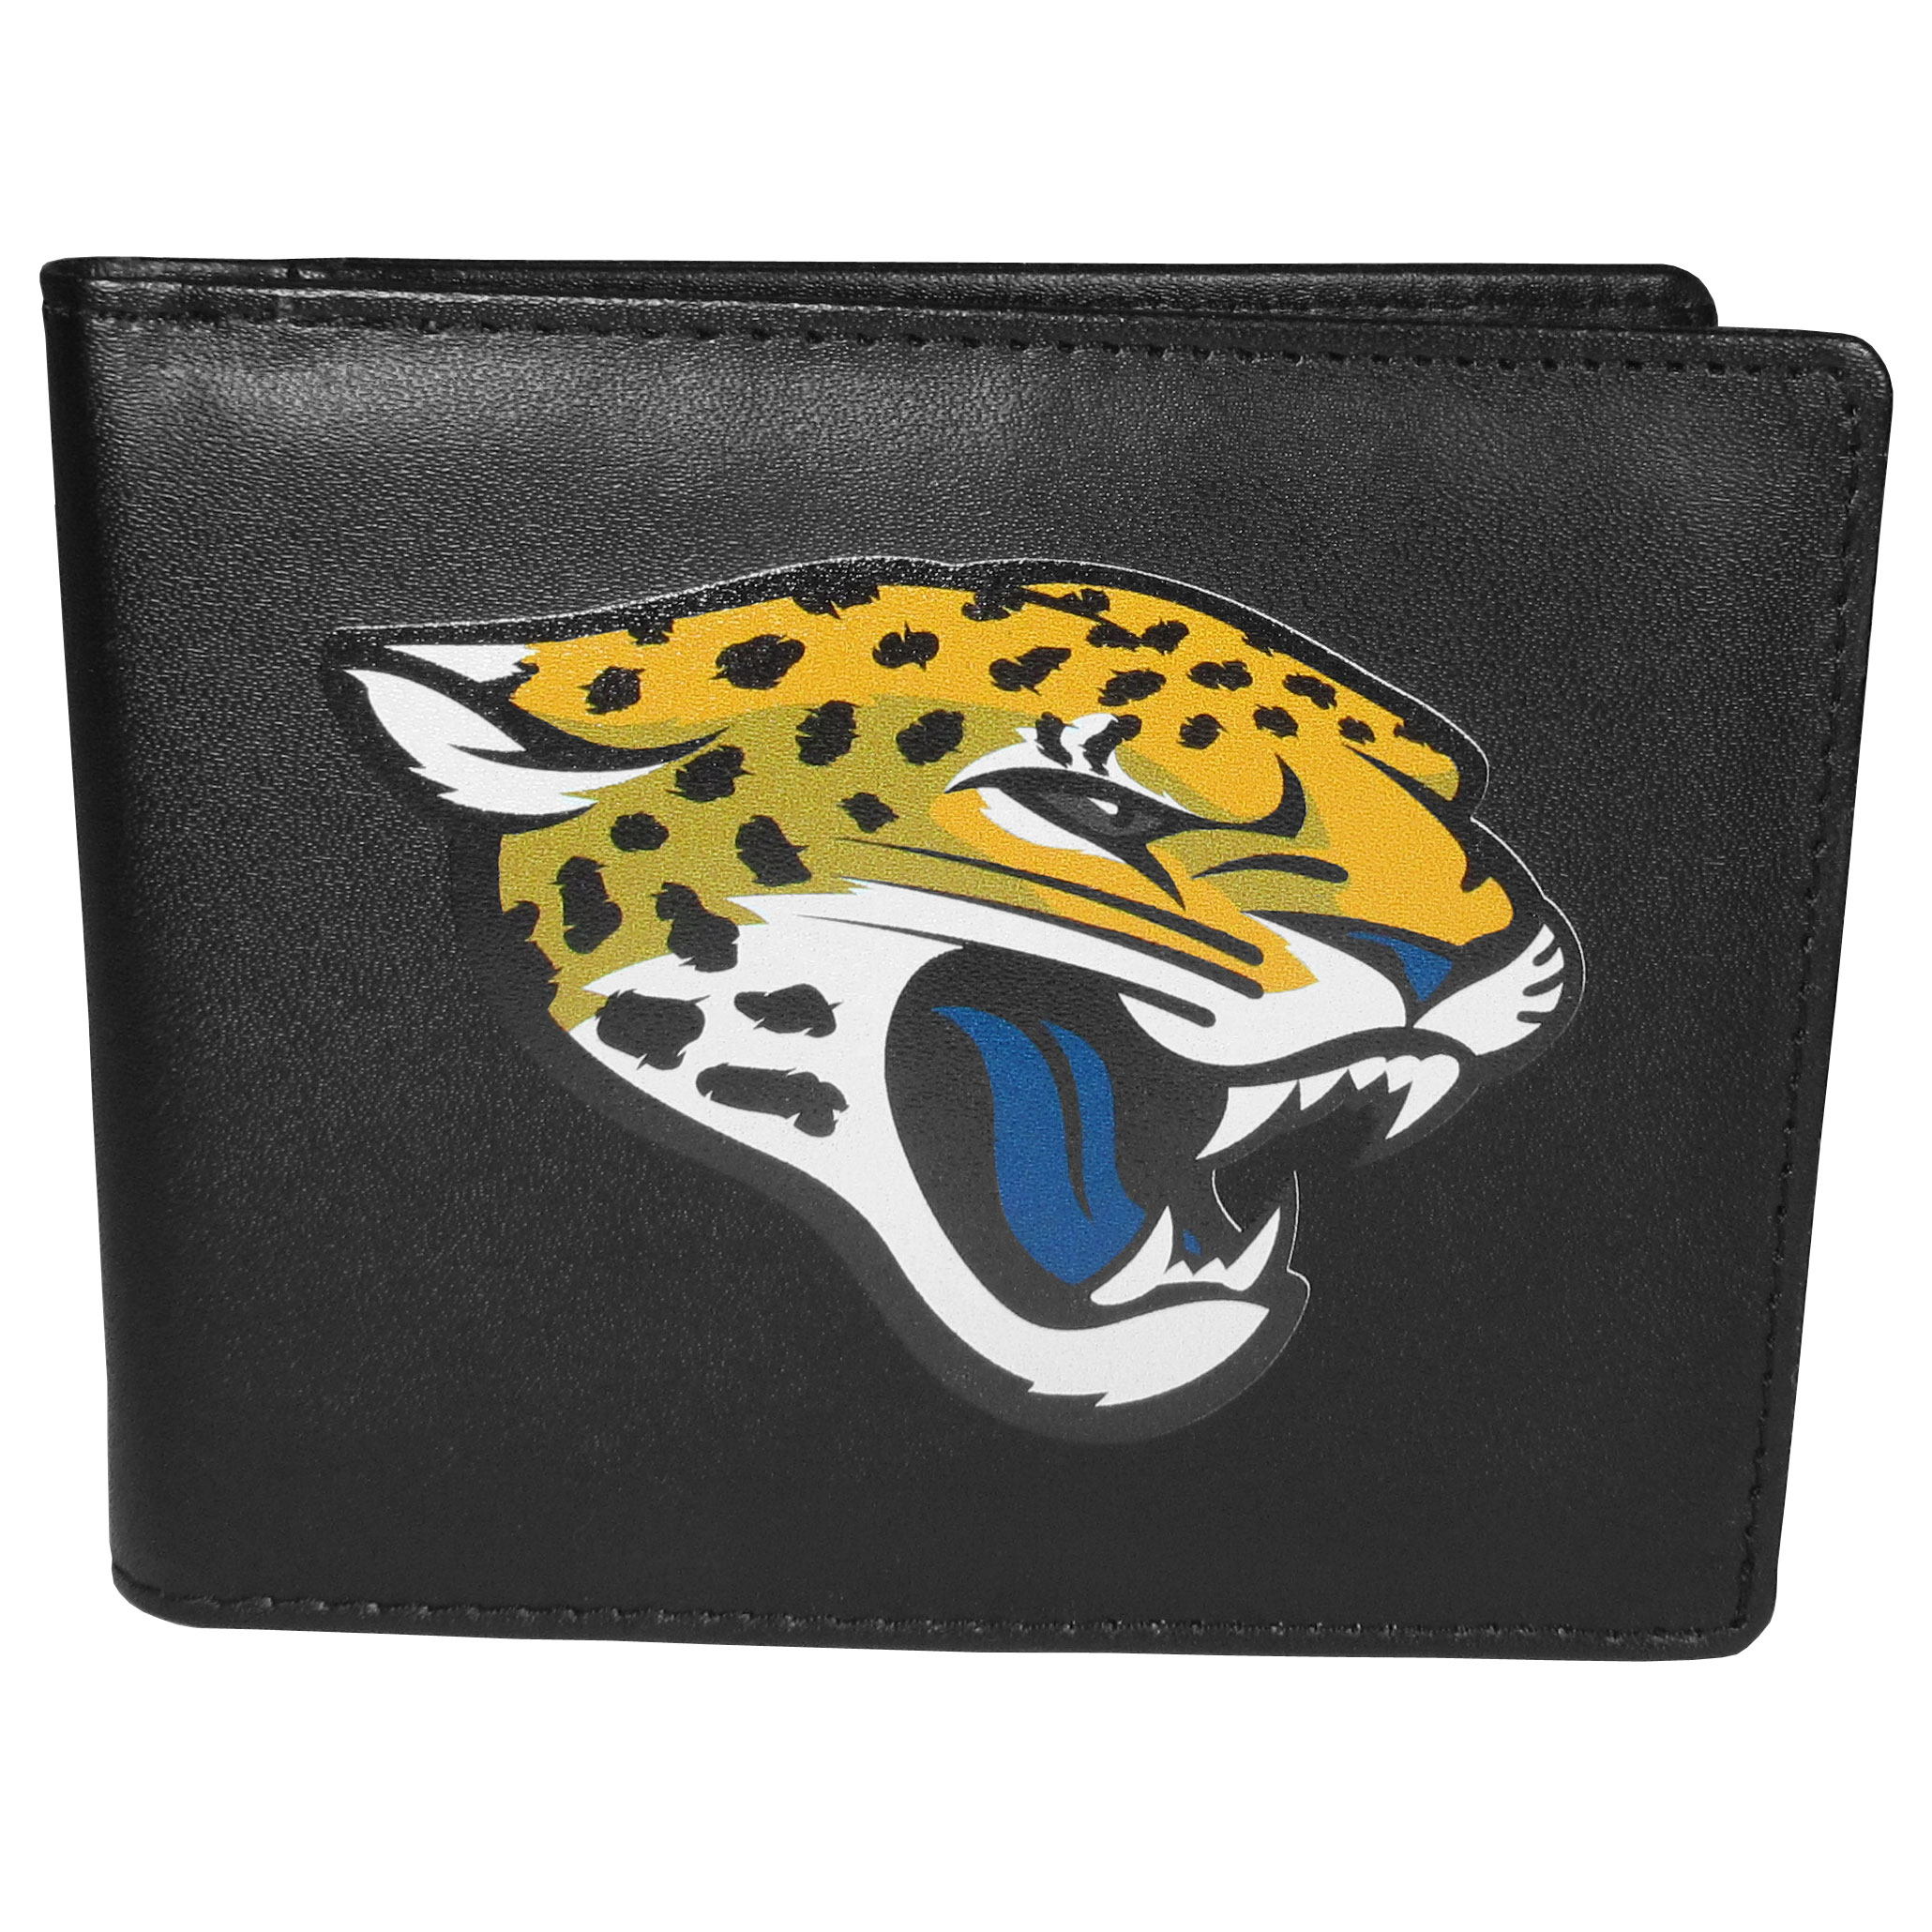 Jacksonville Jaguars Leather Bi-fold Wallet, Large Logo - Our classic fine leather bi-fold wallet is meticulously crafted with genuine leather that will age beautifully so you will have a quality wallet for years to come. The wallet opens to a large, billfold pocket and numerous credit card slots and has a convenient windowed ID slot. The front of the wallet features an extra large Jacksonville Jaguars printed logo.